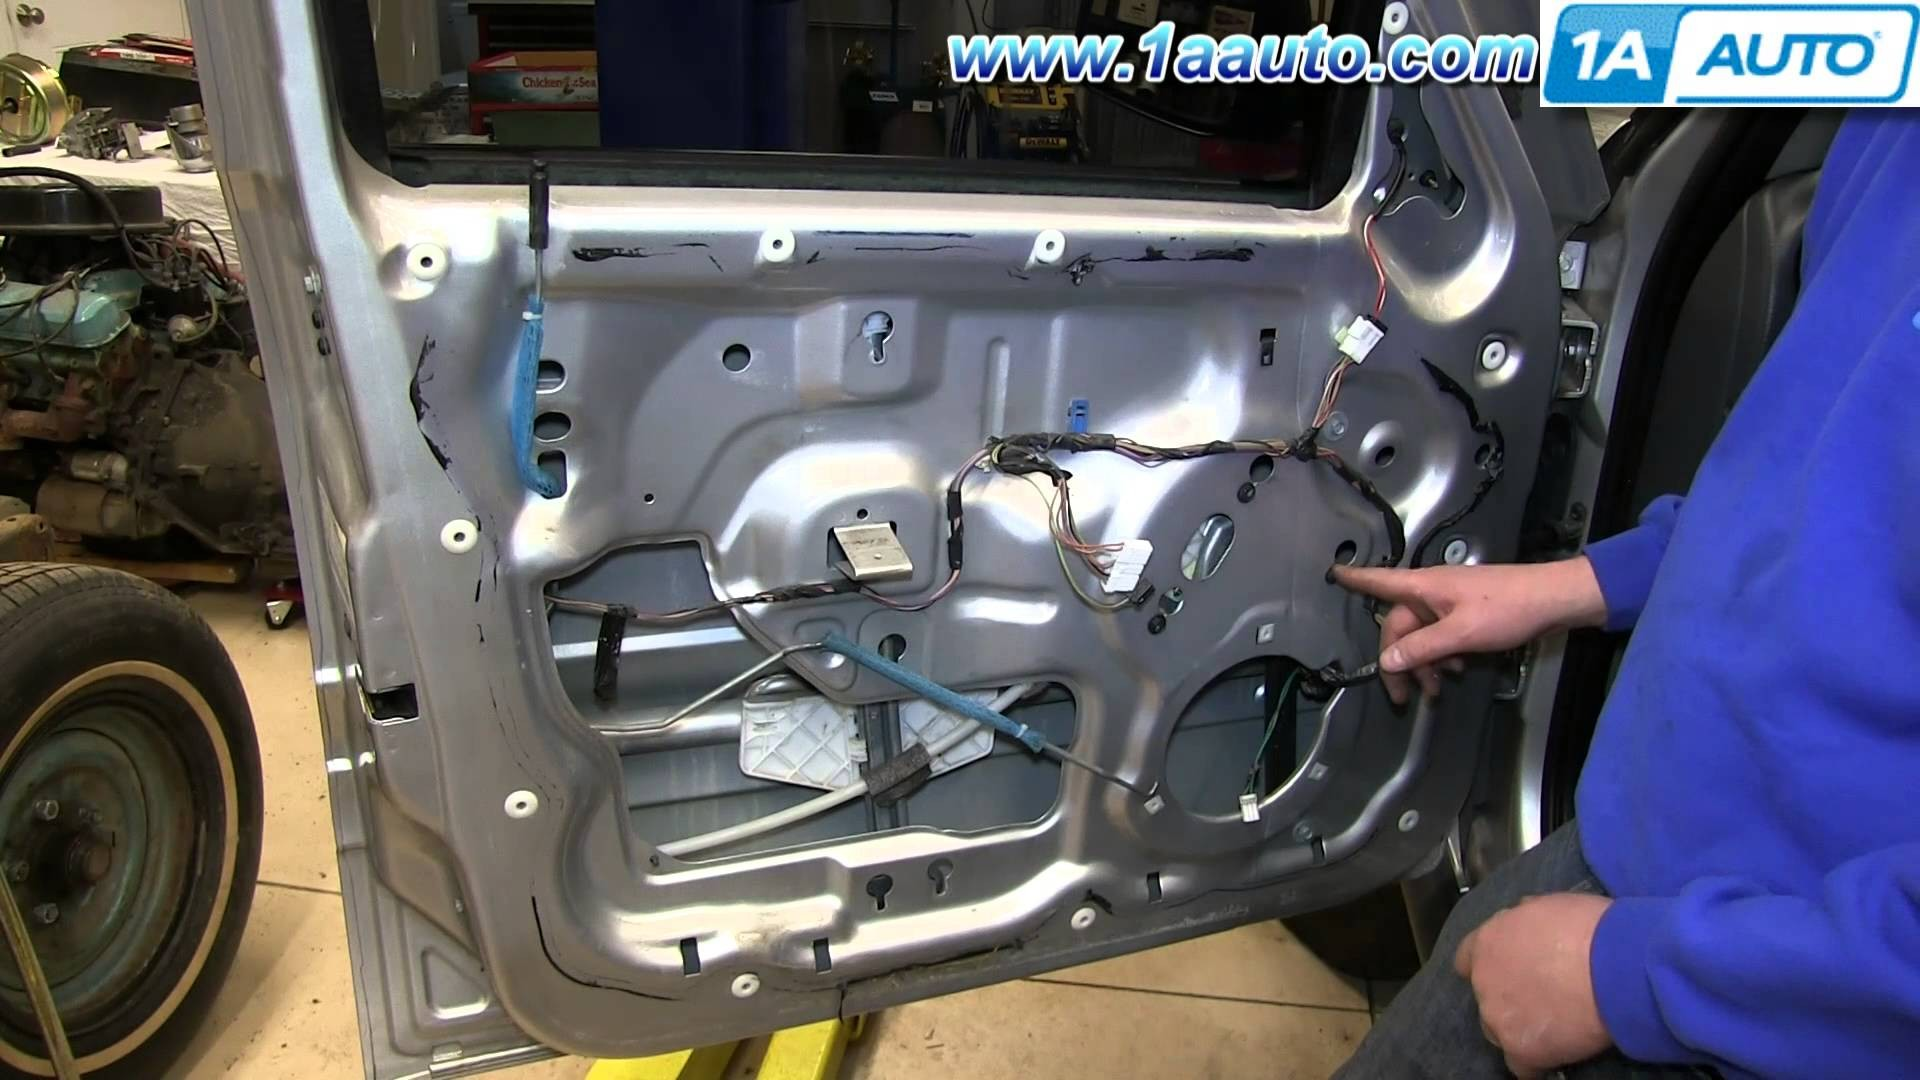 2007 Jeep Commander Engine Diagram How to Install Replace Front Power  Window Regulator 2002 07 Jeep